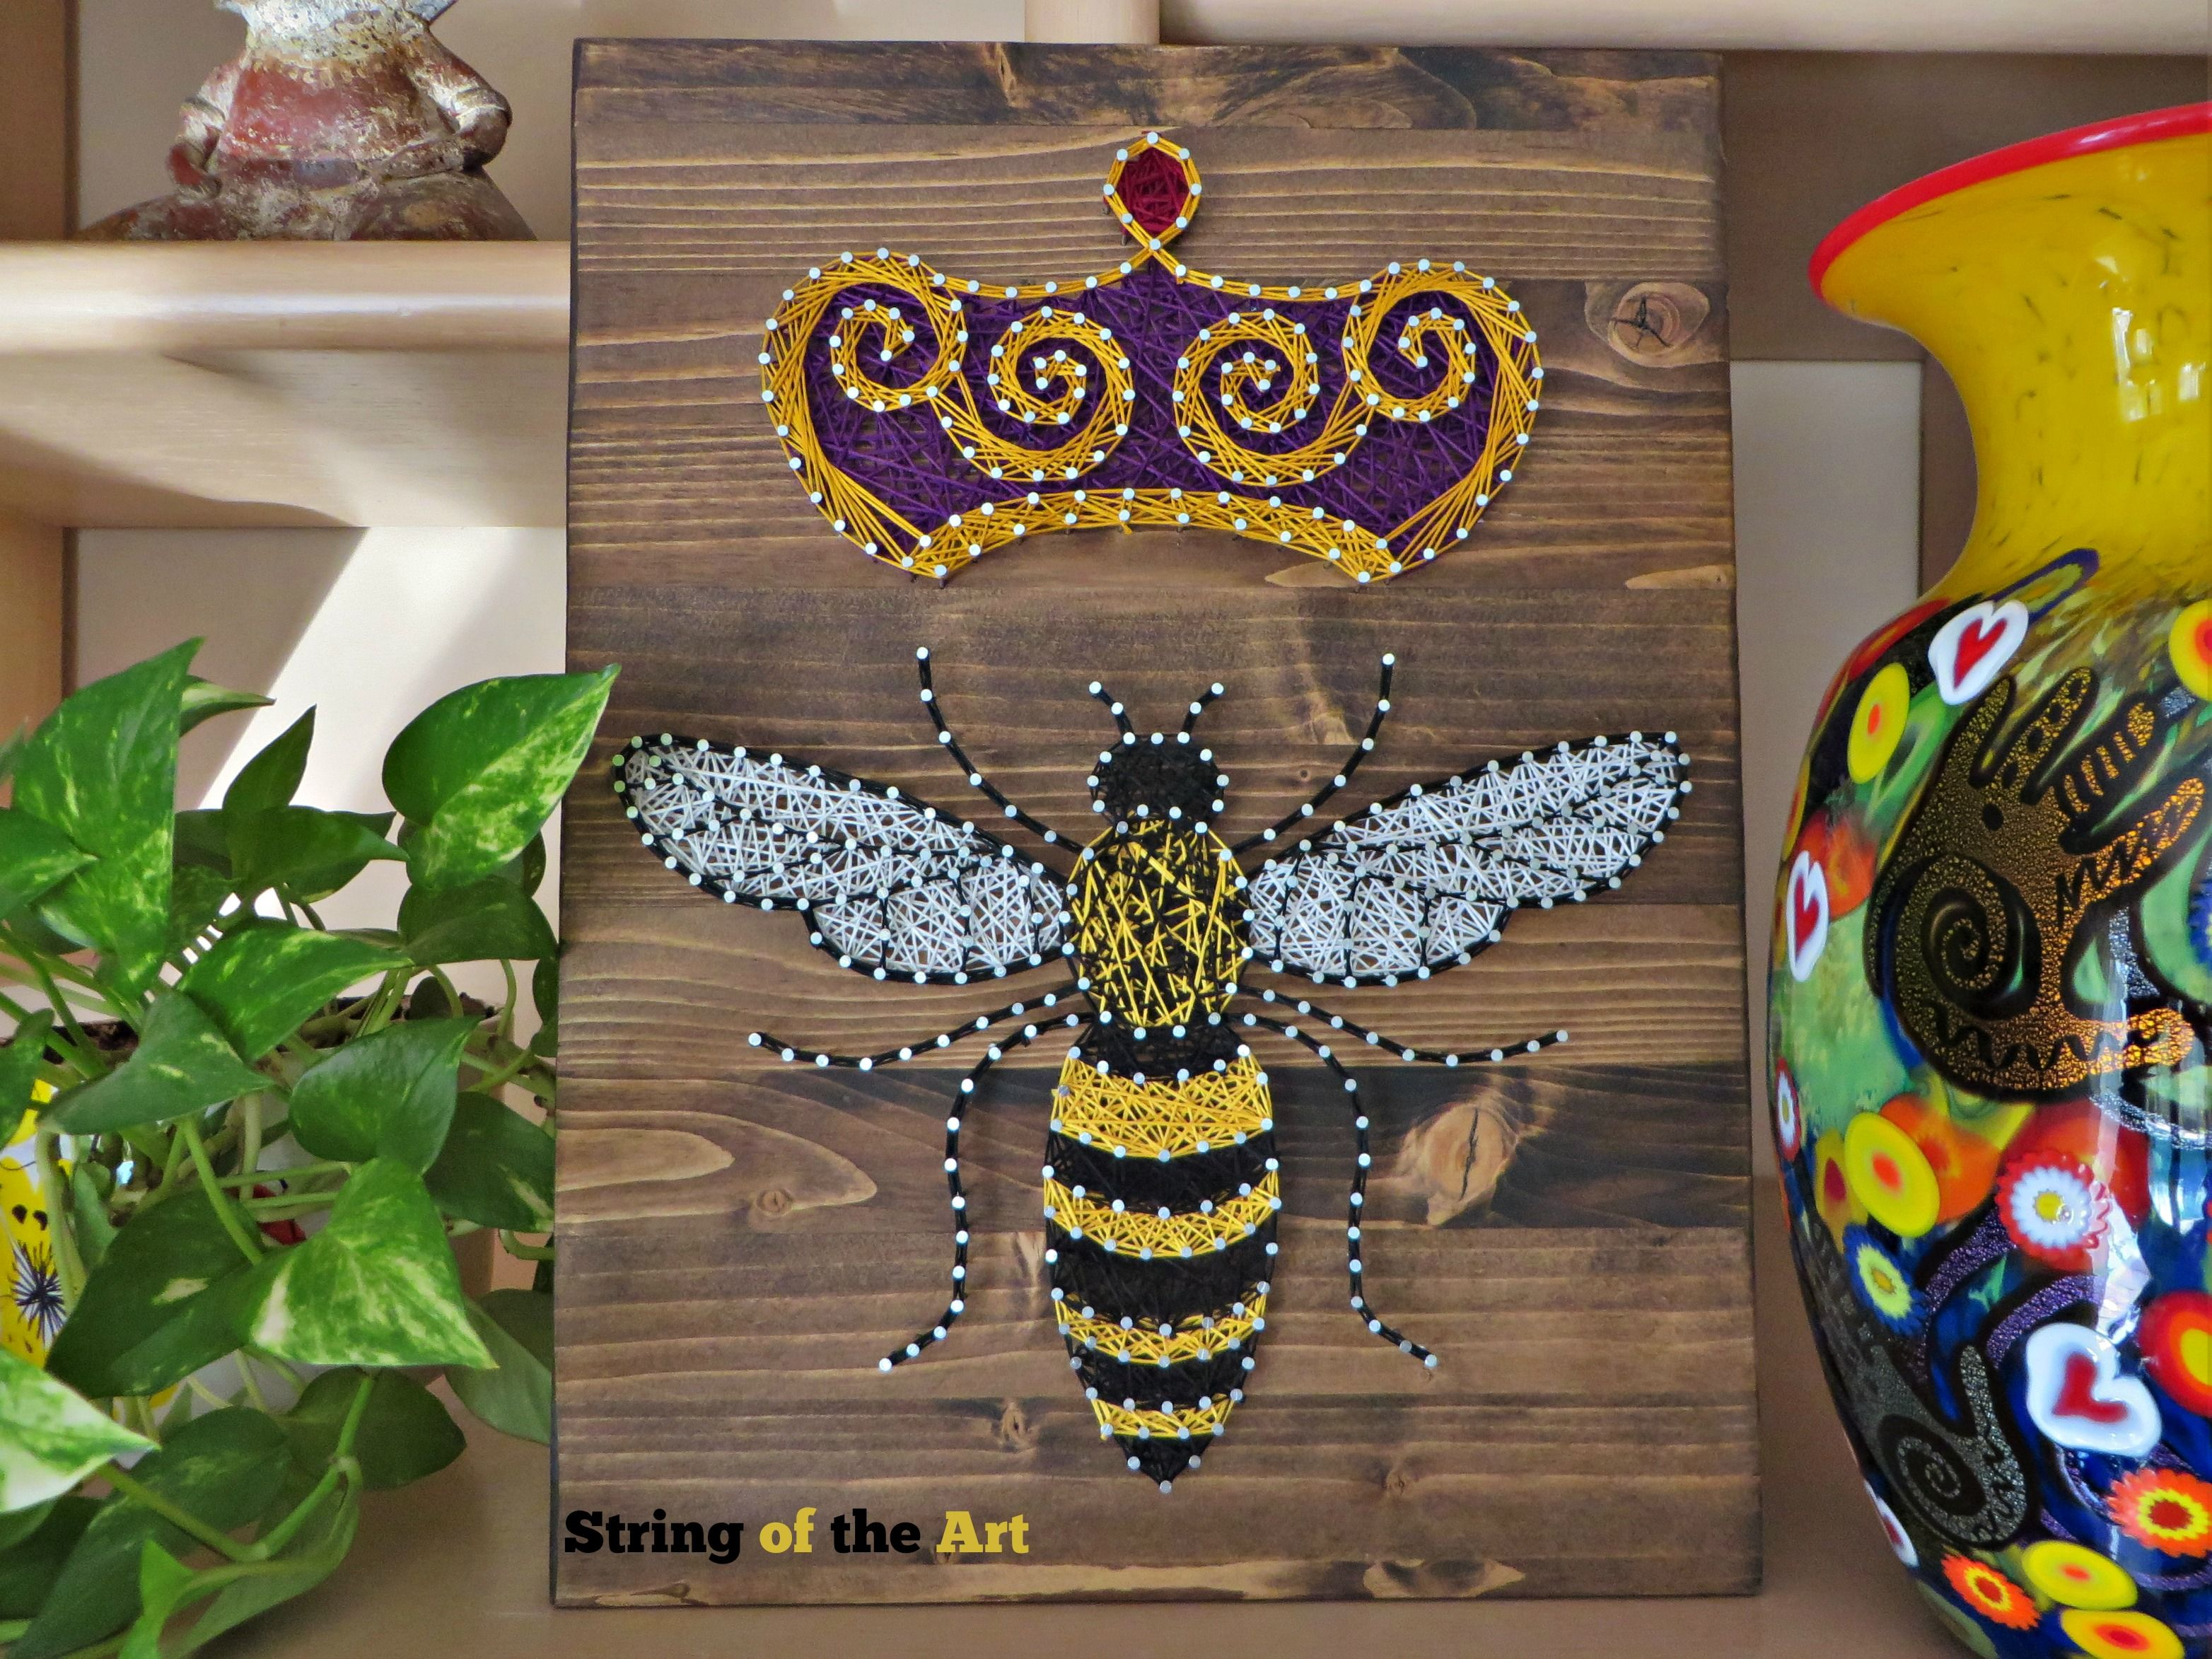 String Art Kit Queen Bee String Art Bee Diy Kit Crafts Kit Bee Decor Wall Decor Crafts